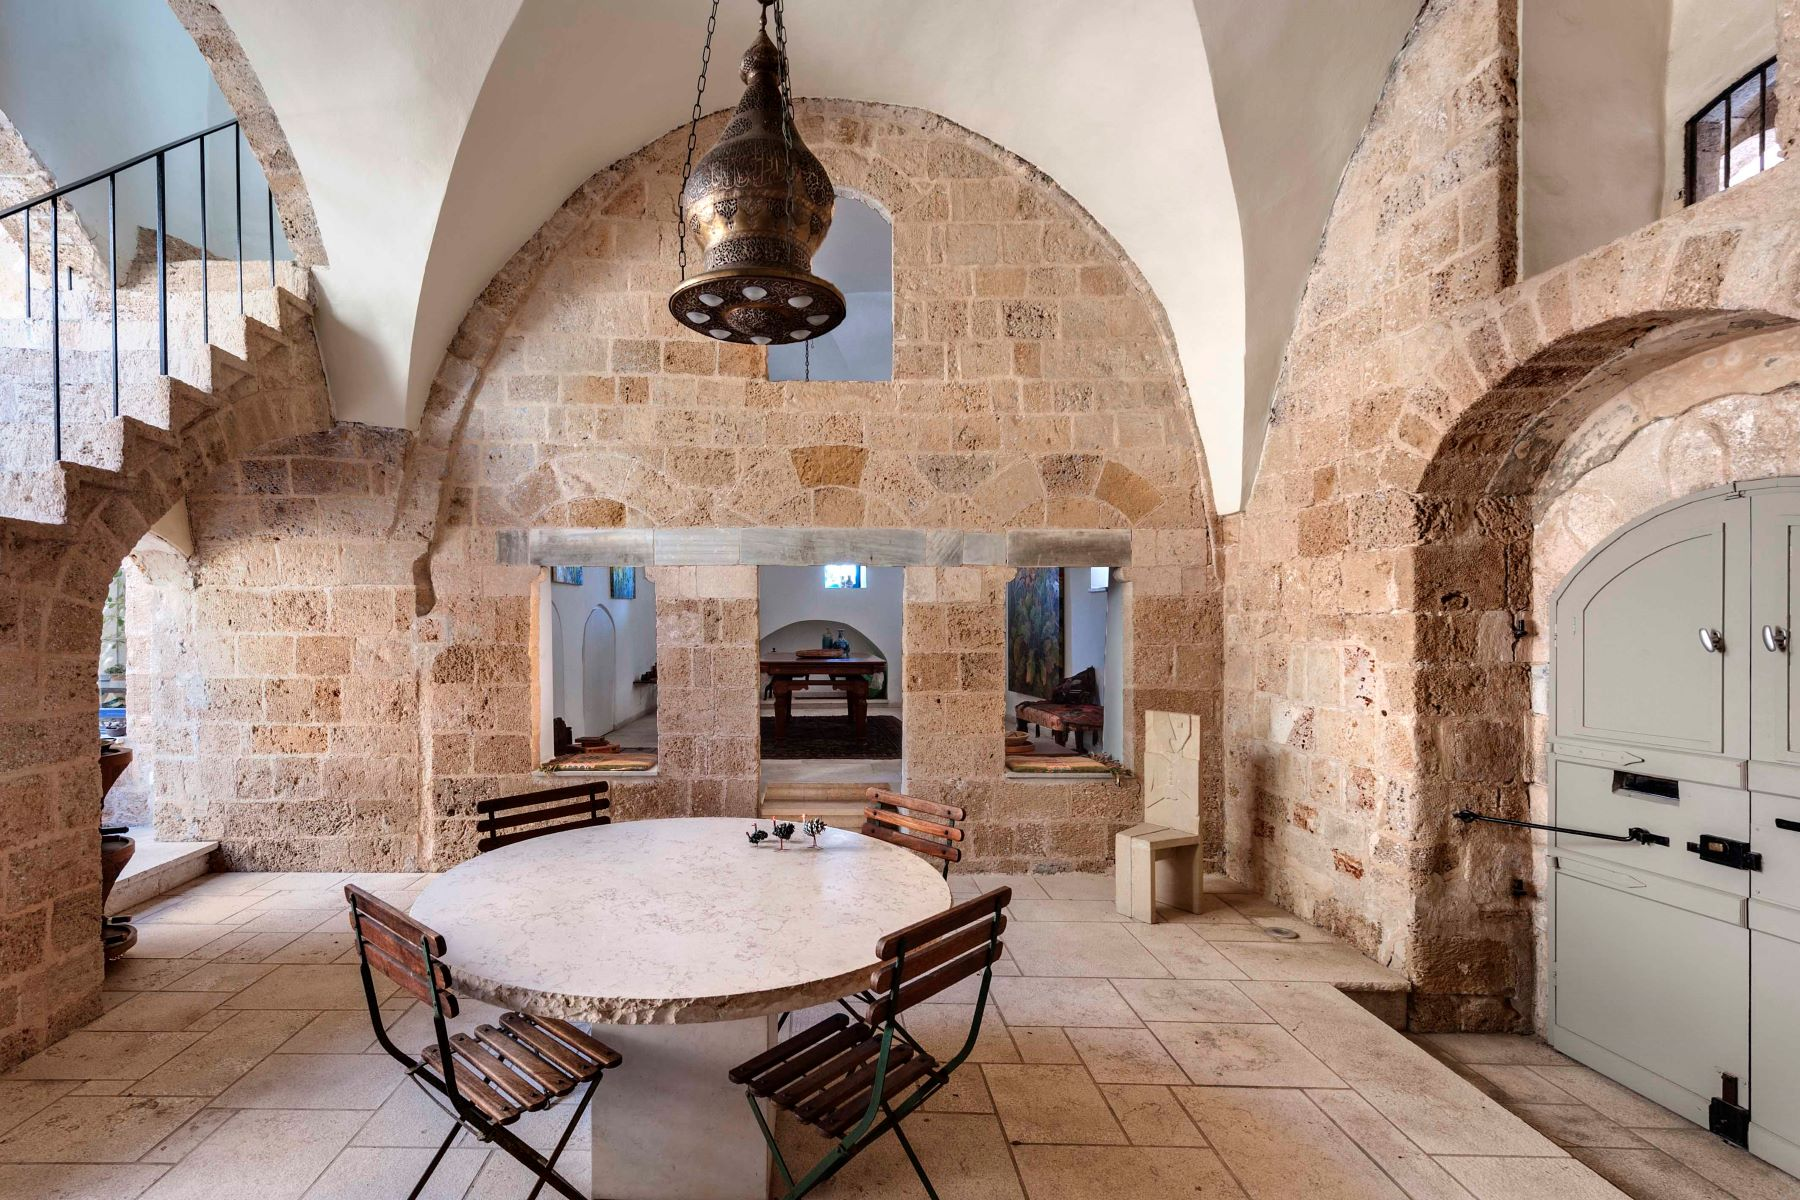 Additional photo for property listing at Luxury Home in The Old City of Historical Jaffa Jaffa, Israel Israel